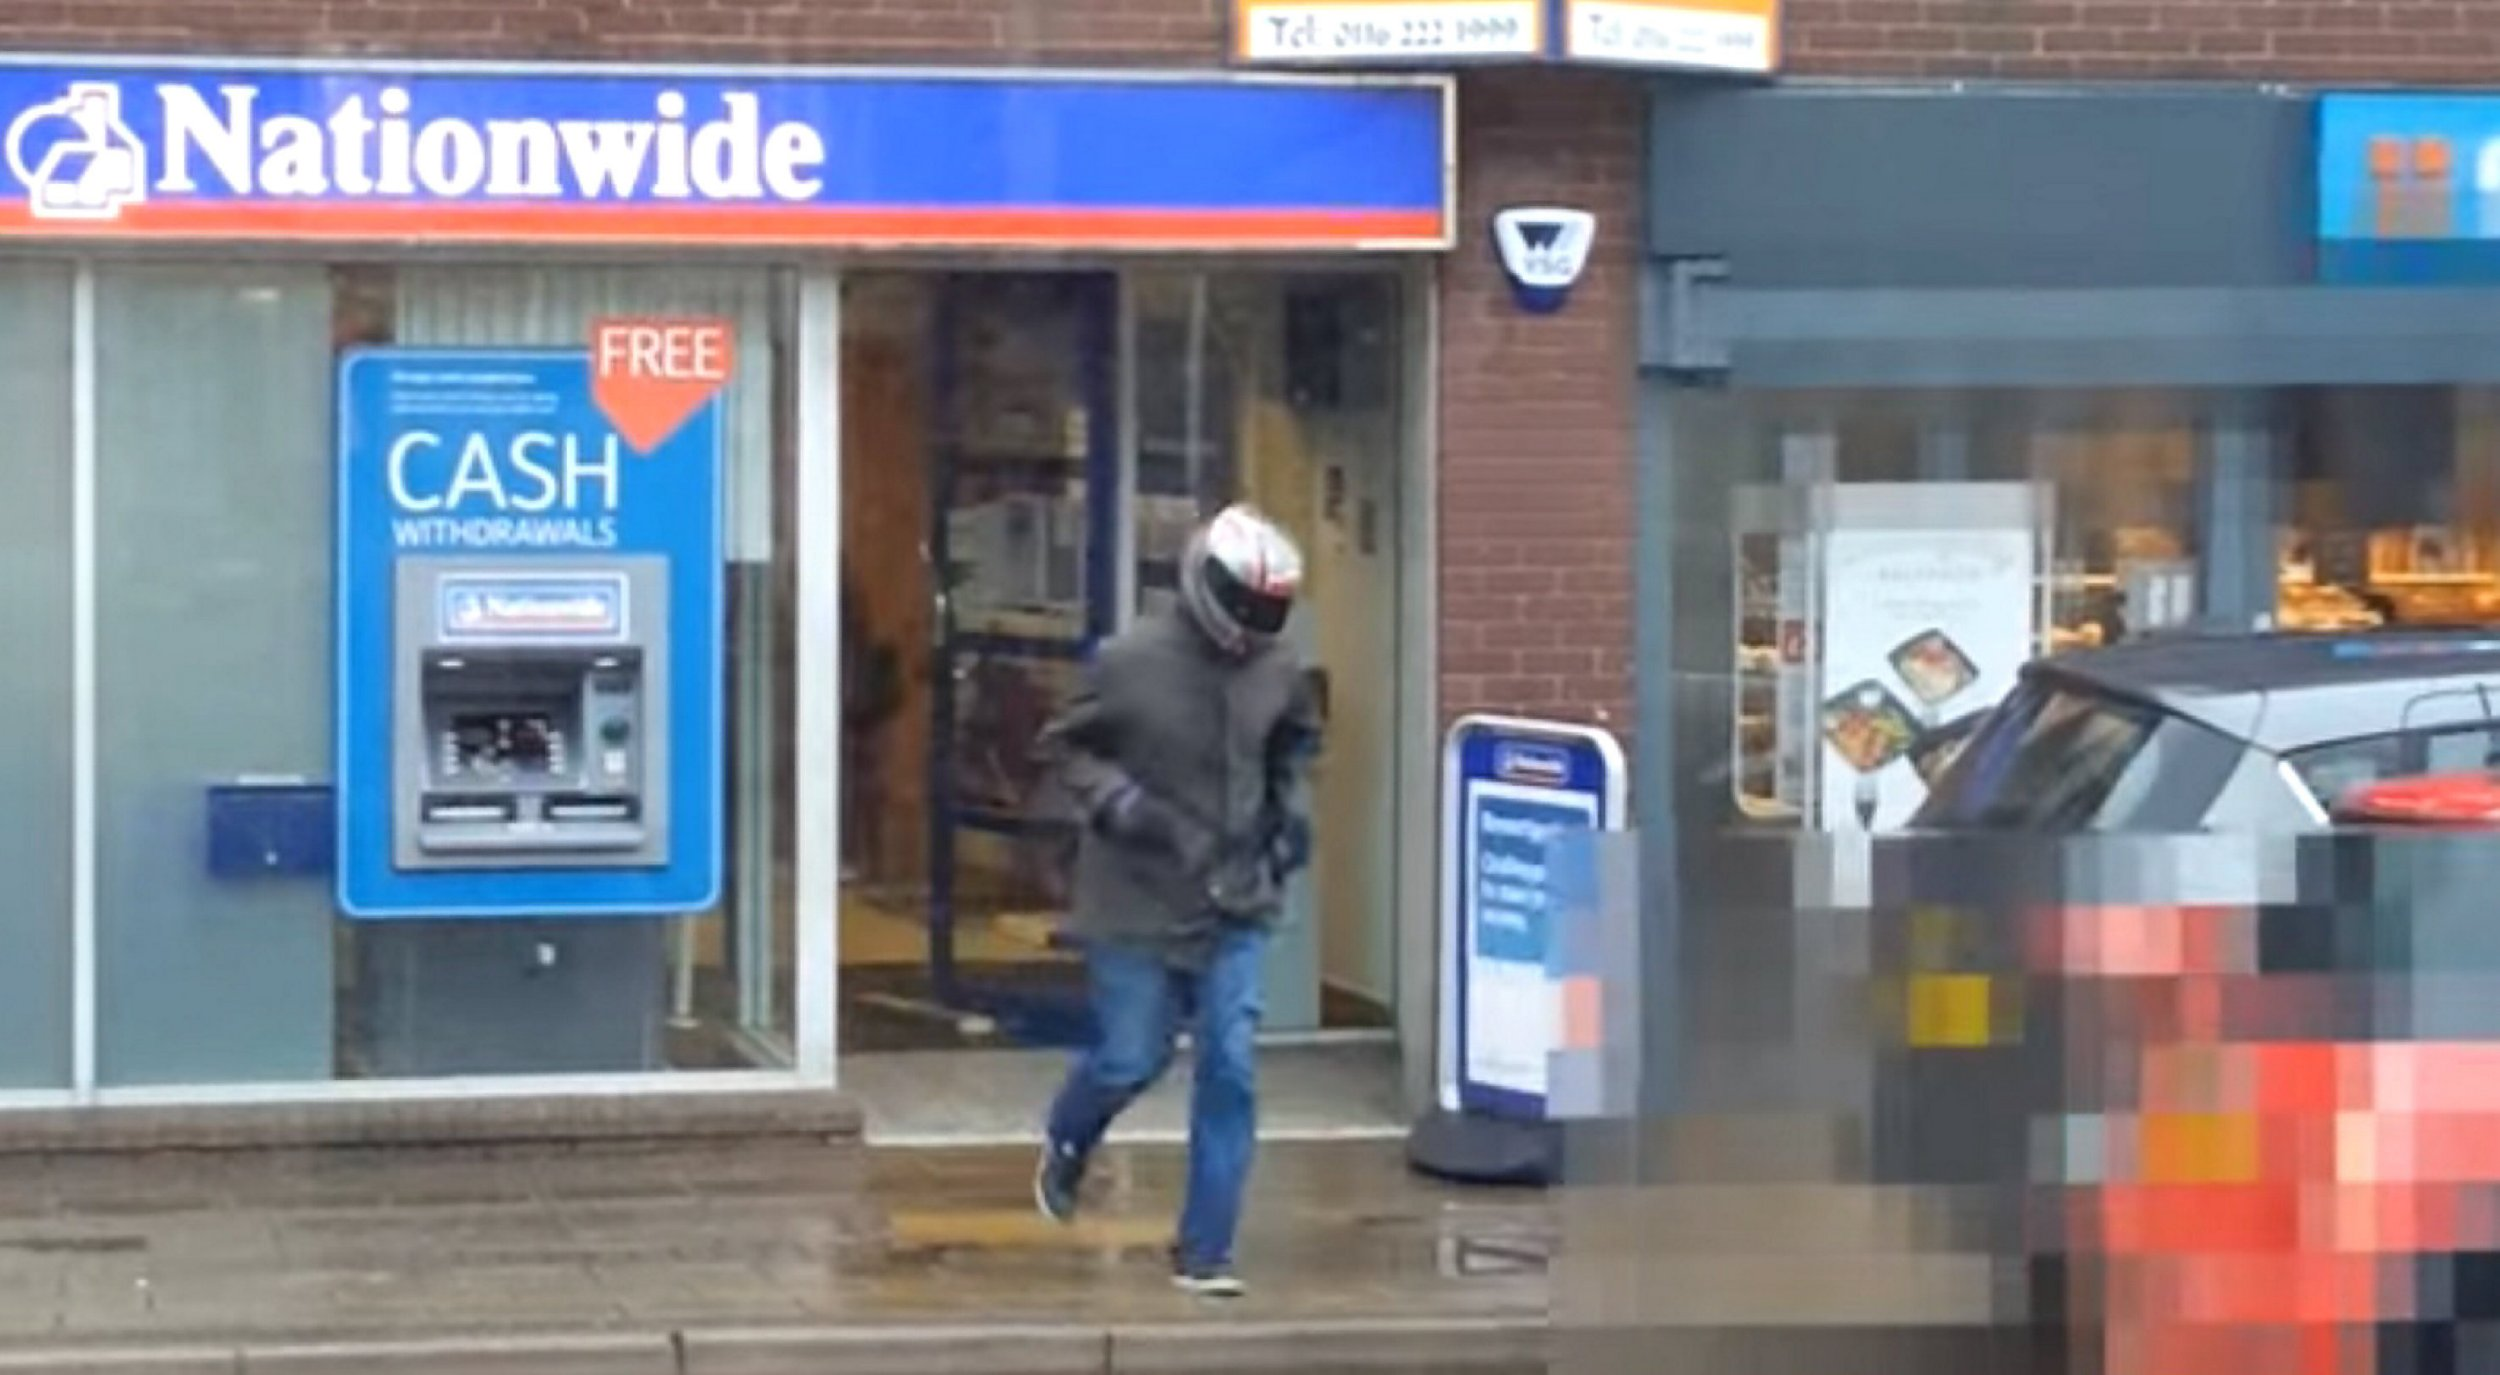 A quick-thinking member of the public captured footage on his mobile ëphone of two robbers making off from the scene of an attempted robbery of a Nationwide Bank in Wigston. See Newsteam story NTIRAID; This is the shocking moment an onlooker filmed two armed robbers fleeing from a building society, just seconds after threatening staff with a knife. The quick-thinking bystander captured the footage on his phone, as the criminals ran out of a branch of Nationwide in Wigston, Leics. The men, who were wearing wearing motorcycle helmets, raided the building society at 11.15am on Wednesday last week (11/5). Just moments before, the pair had pulled a knife on terrified staff, ordering them to hand over cash.